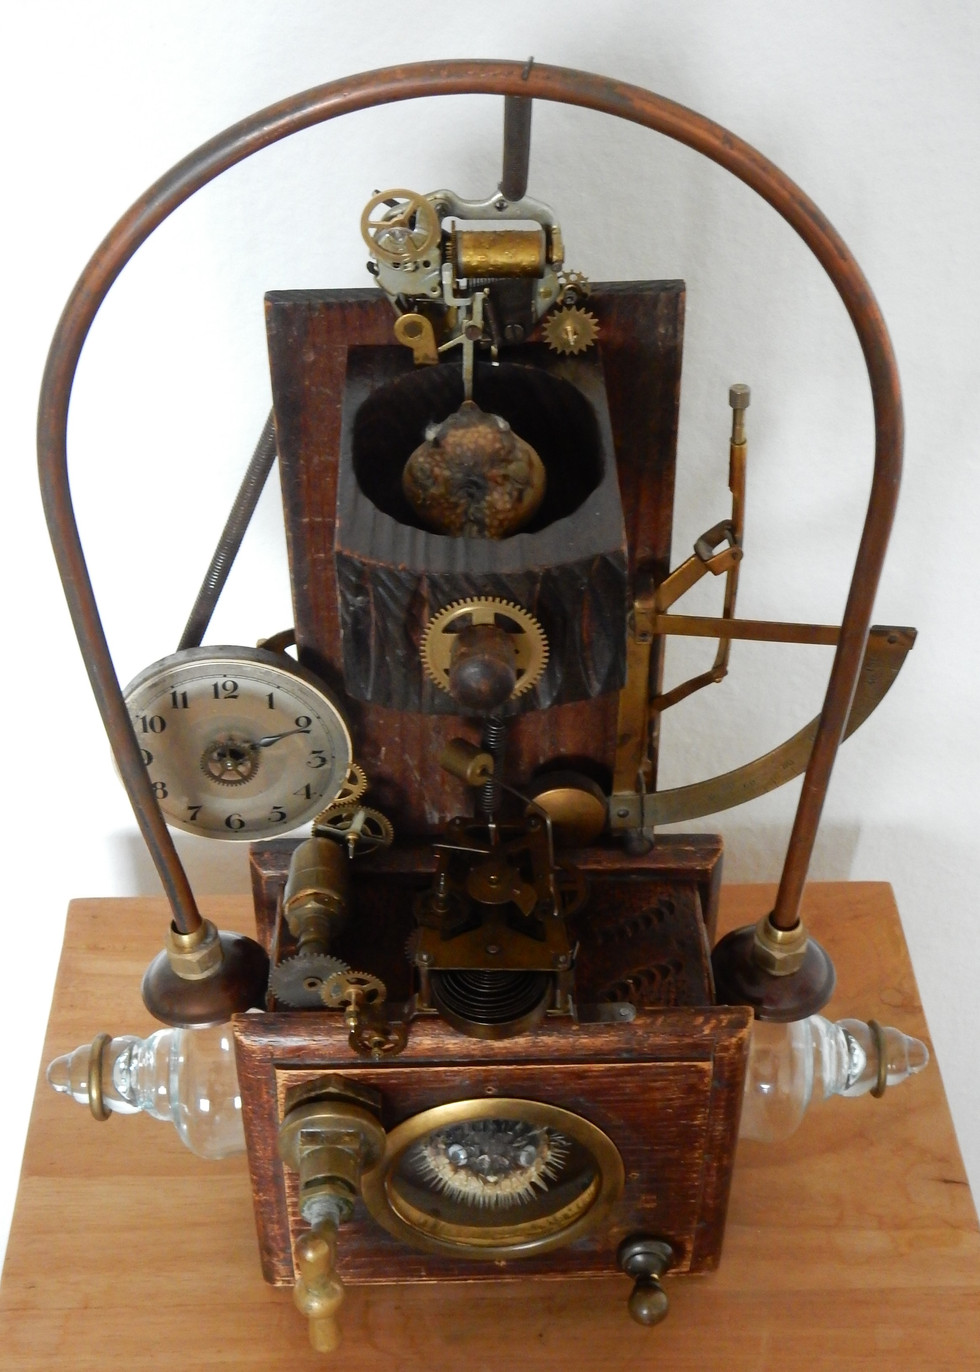 'Bring it back to life' machine